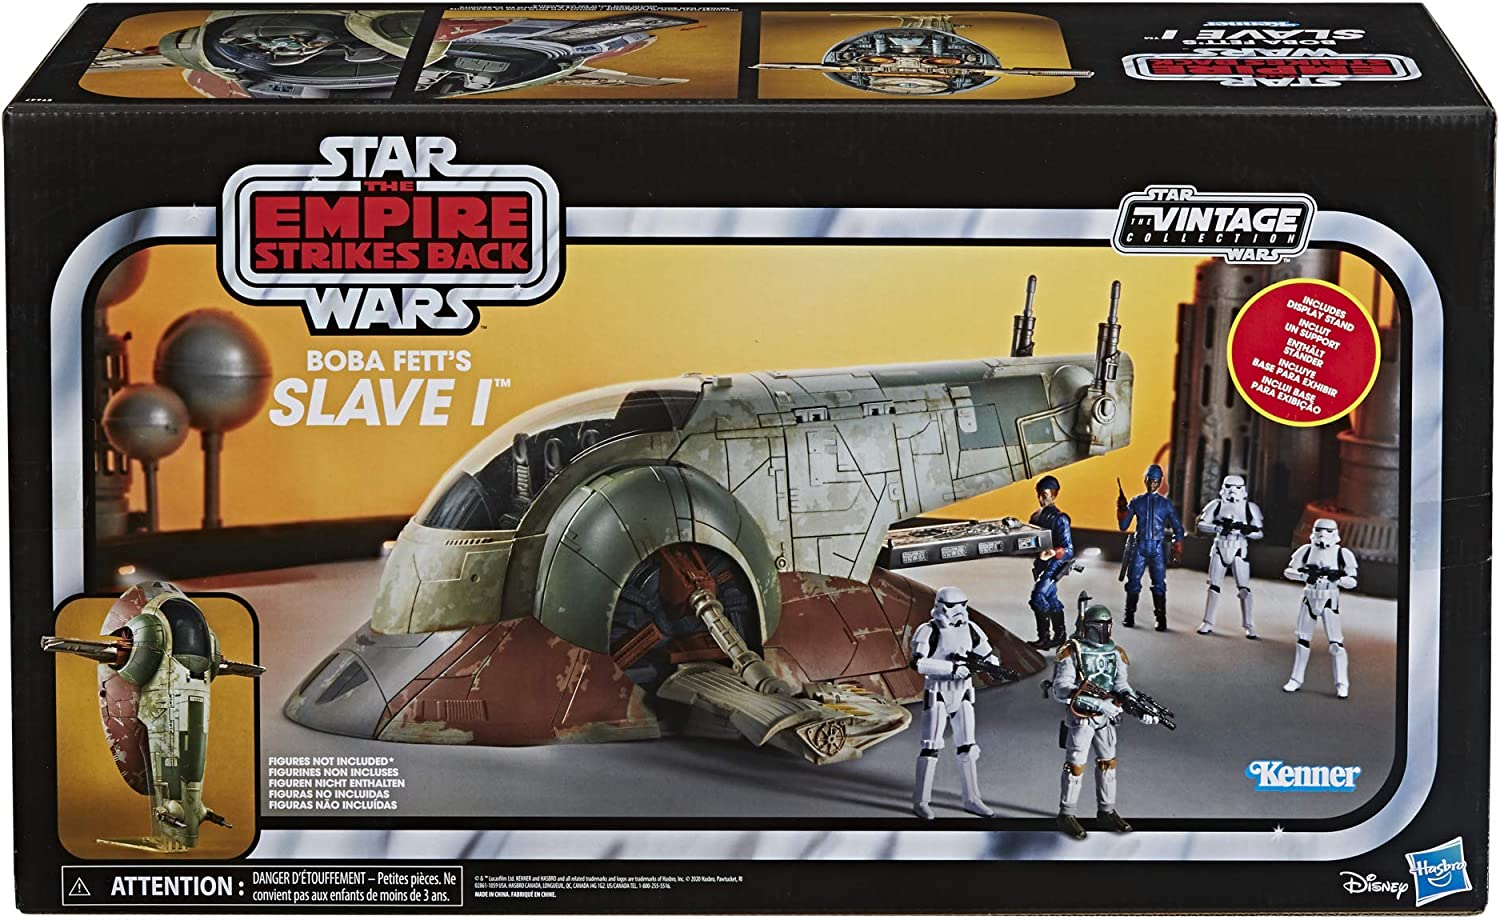 Amazon Com Star Wars The Vintage Collection Star Wars The Empire Strikes Back Boba Fett S Slave I Toy Vehicle Toys For Kids Ages 4 And Up Toys Games